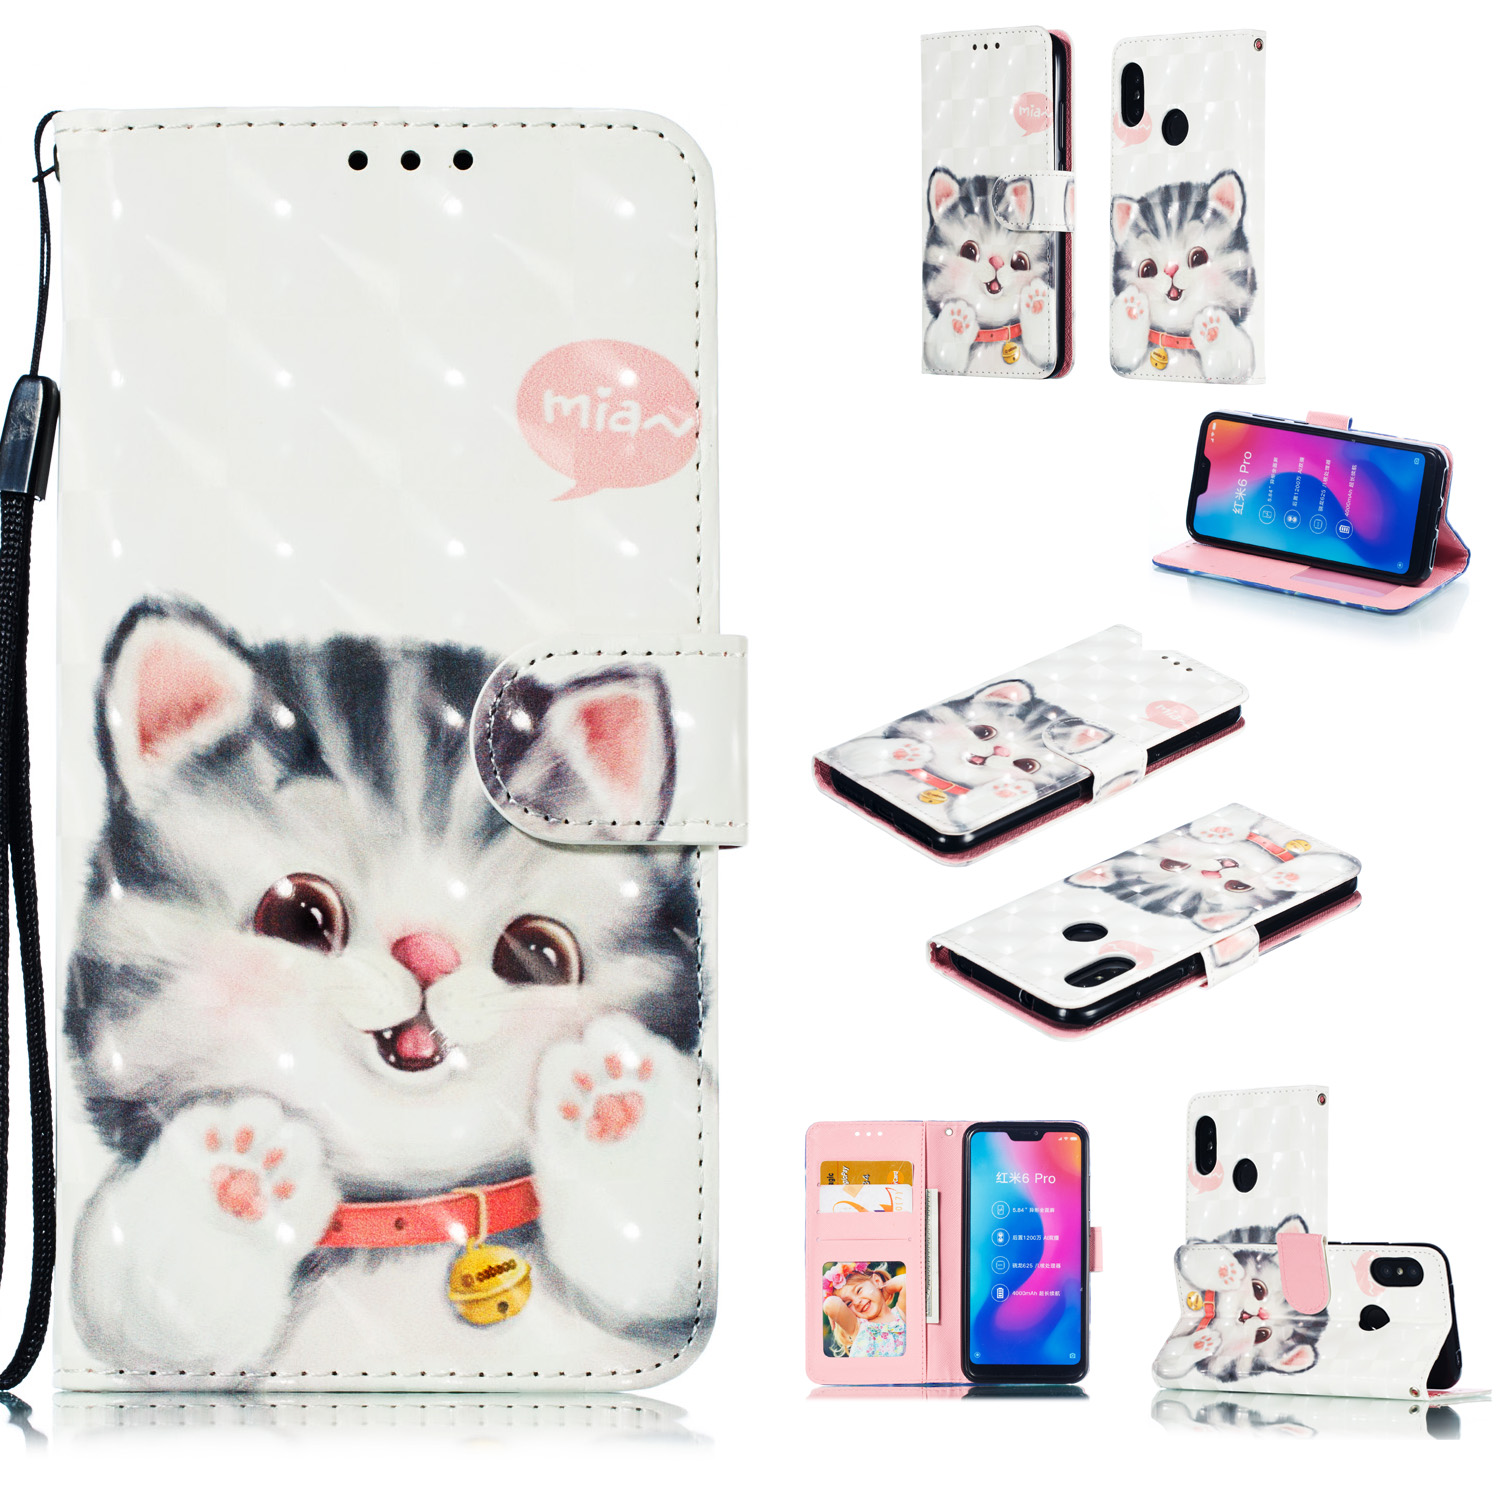 For Redmi 6 pro/XIAOMI A2 LITE 3D Coloured Painted Leather Protective Case with Bracket & Card Position & Lanyard Jingle cat